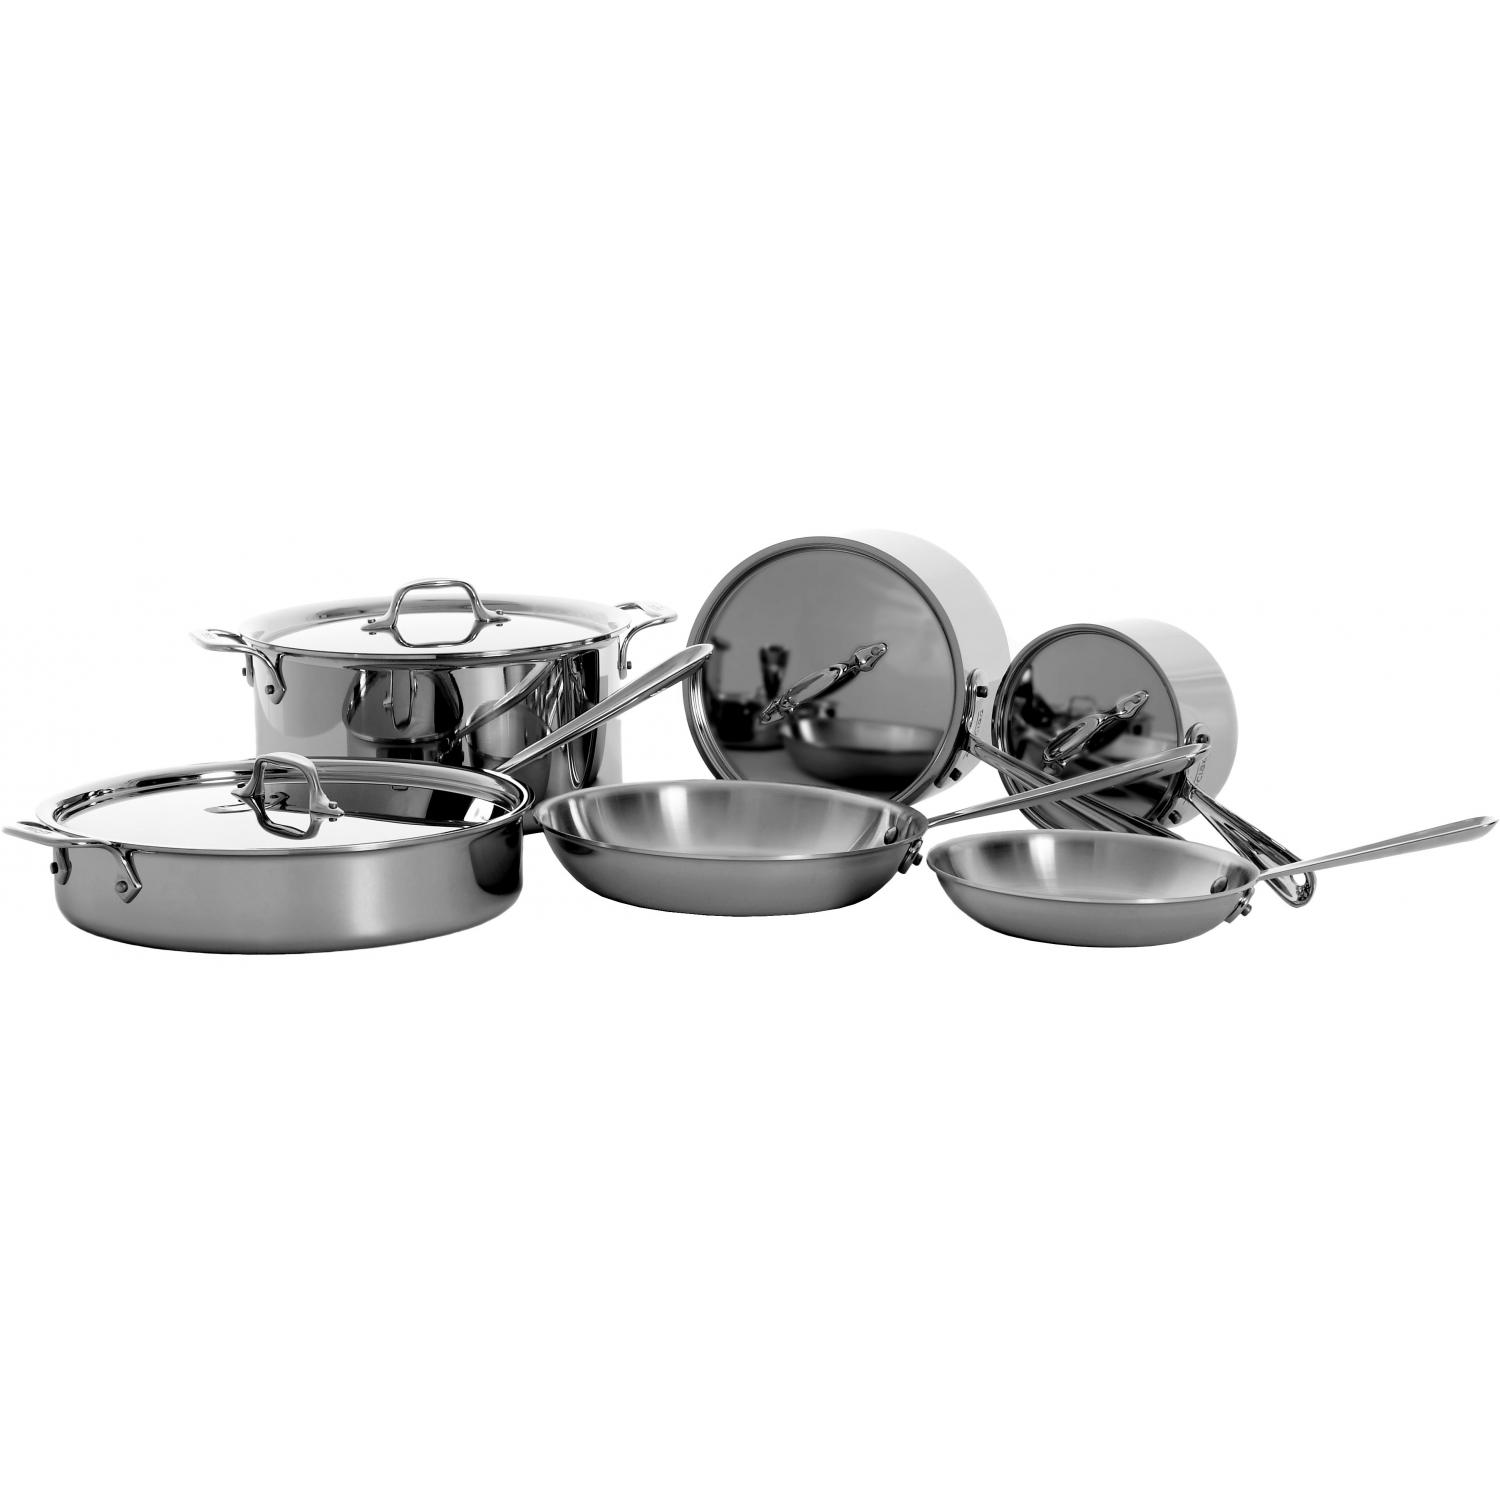 All-Clad Stainless 10-Piece Specialty Cookware Set